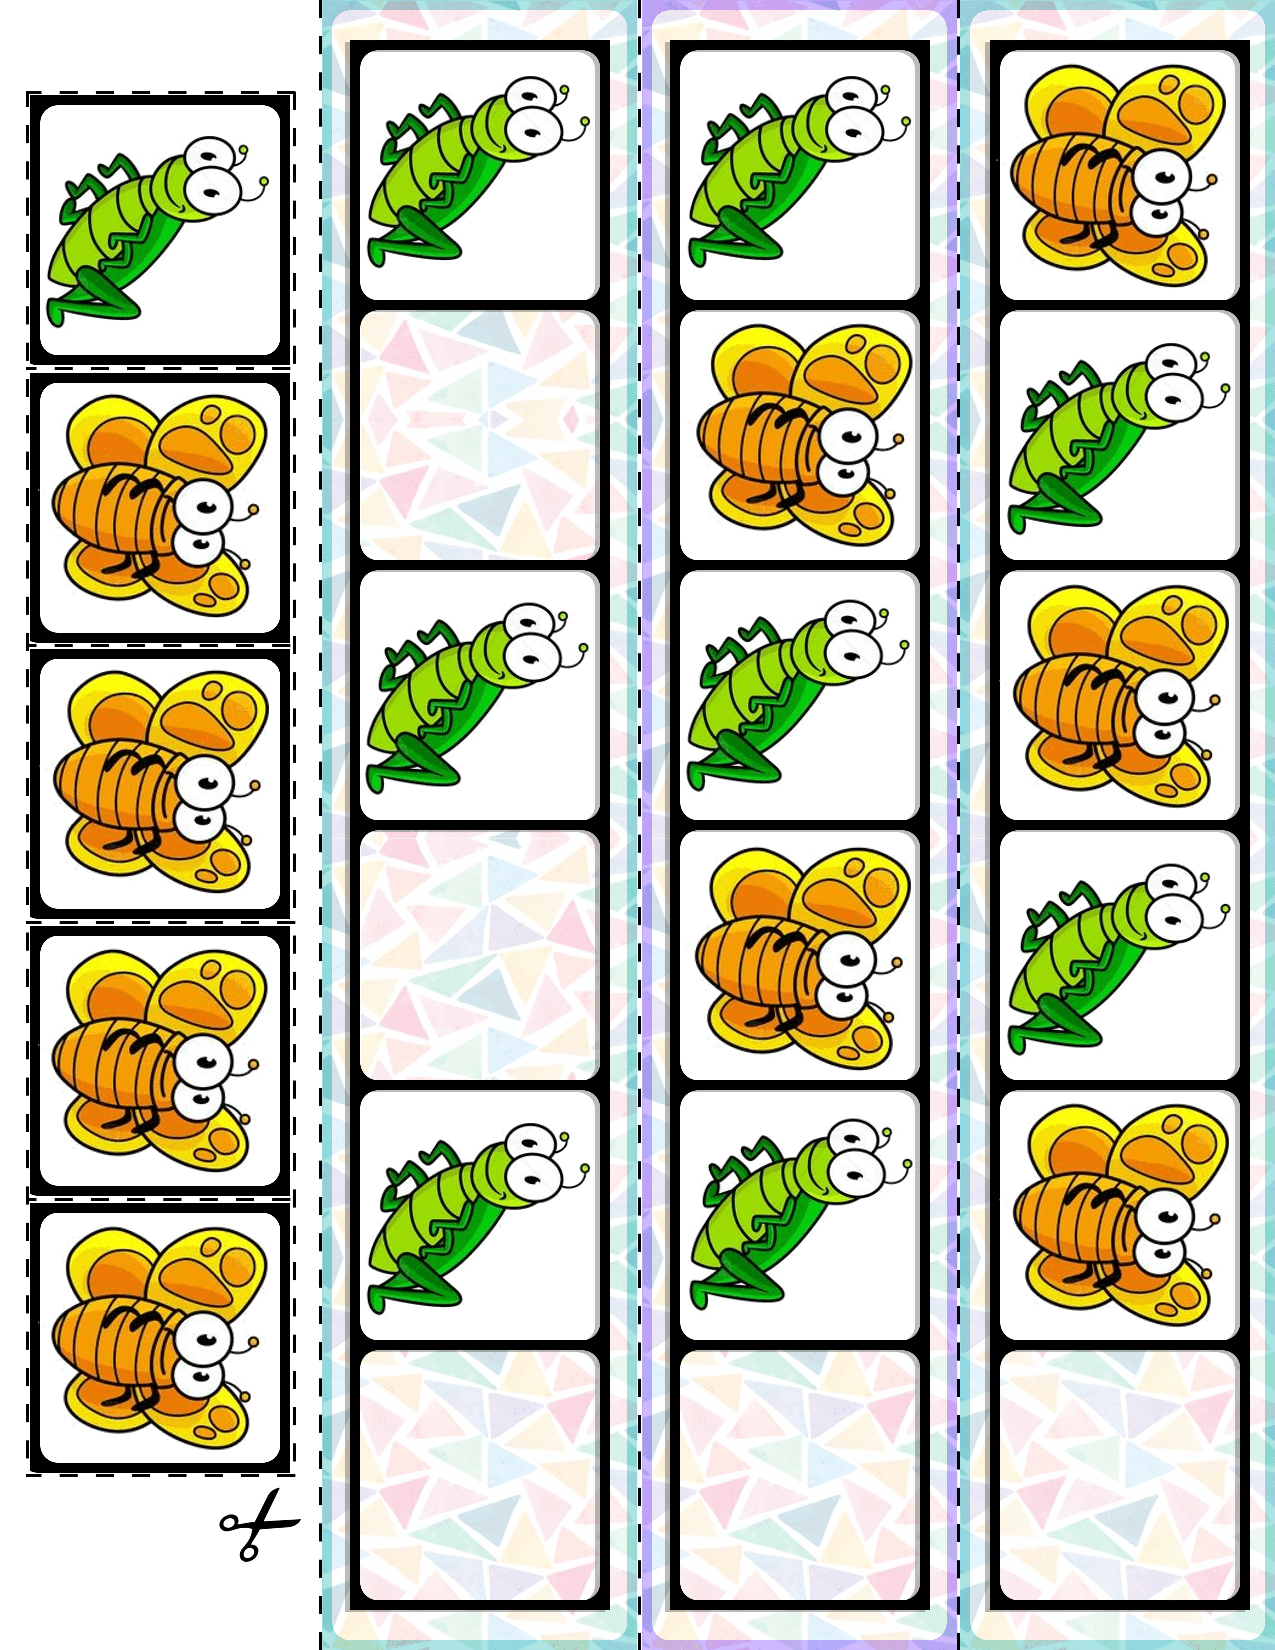 1 Teach Basic Ab Patterns With These Spring Bugs Fill In The Pattern Cards 30 Cards And Super Quick Prep Mat Ab Patterns Preschool Patterns Math Patterns [ 1650 x 1275 Pixel ]